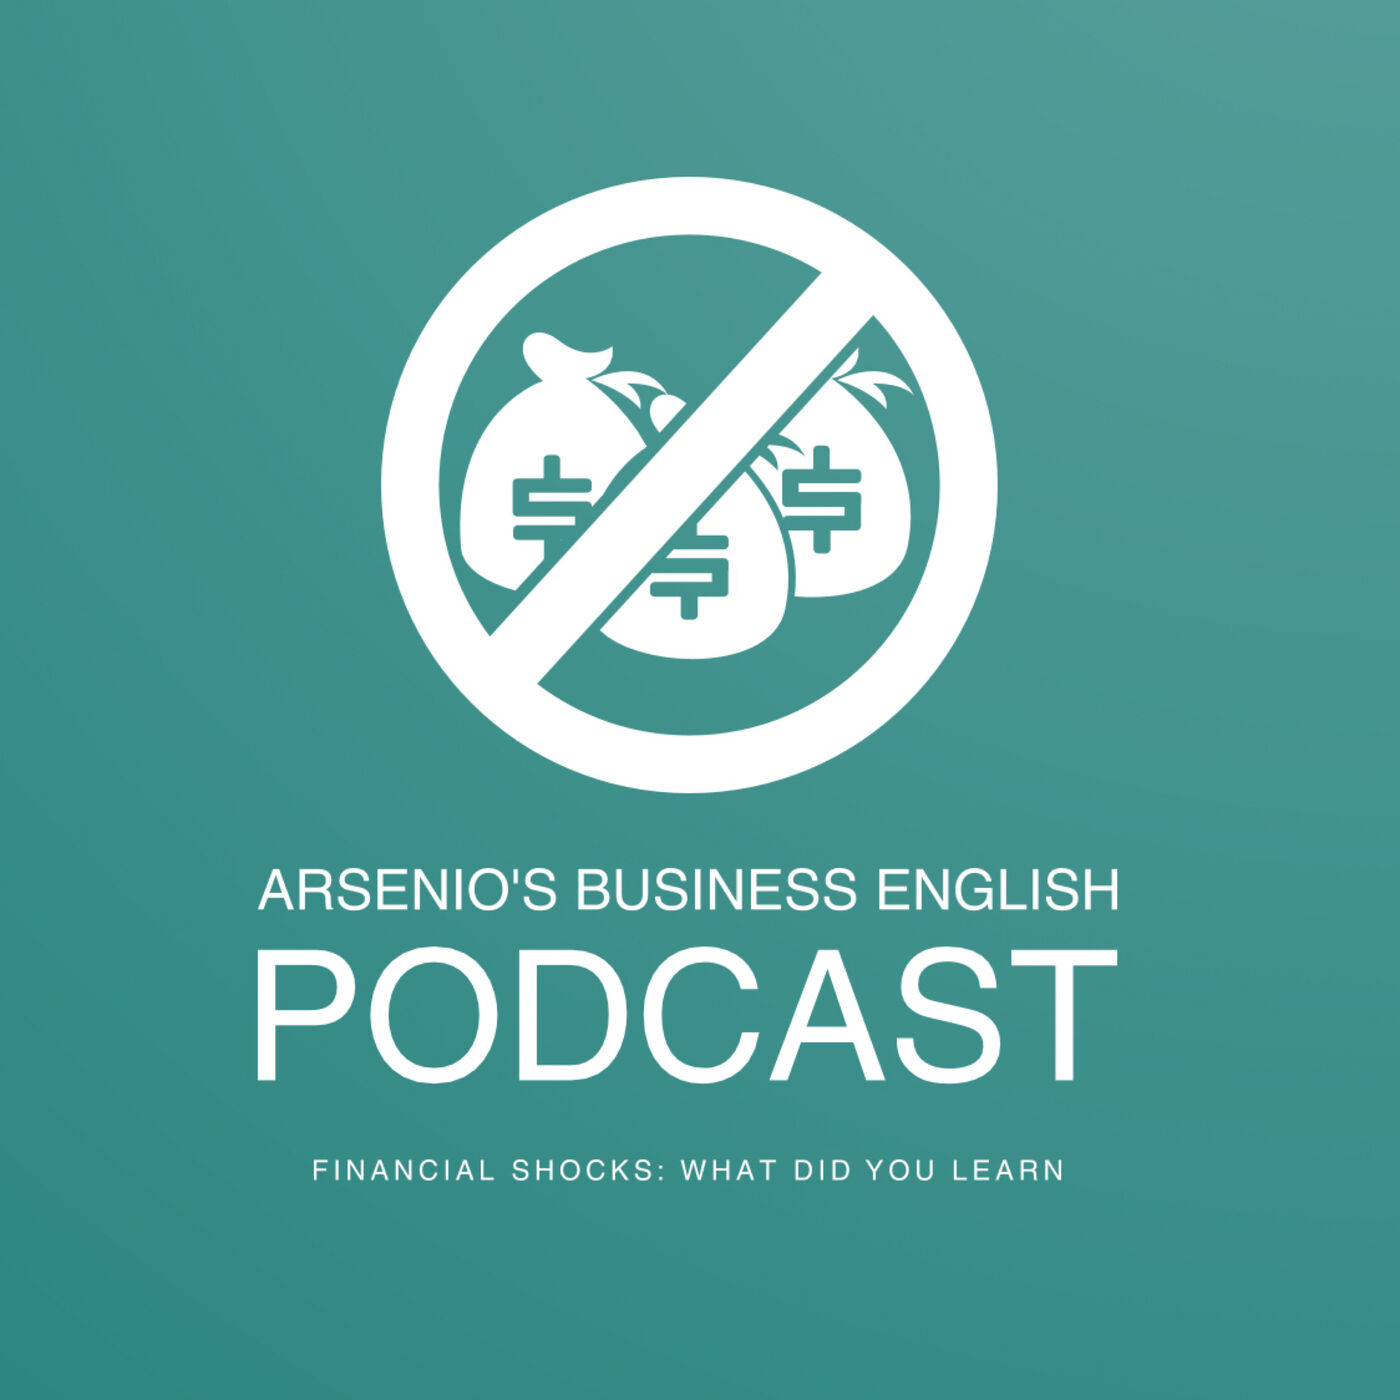 Arsenio's Business English Podcast | Investment | Financial Shocks: What Have You Learned?